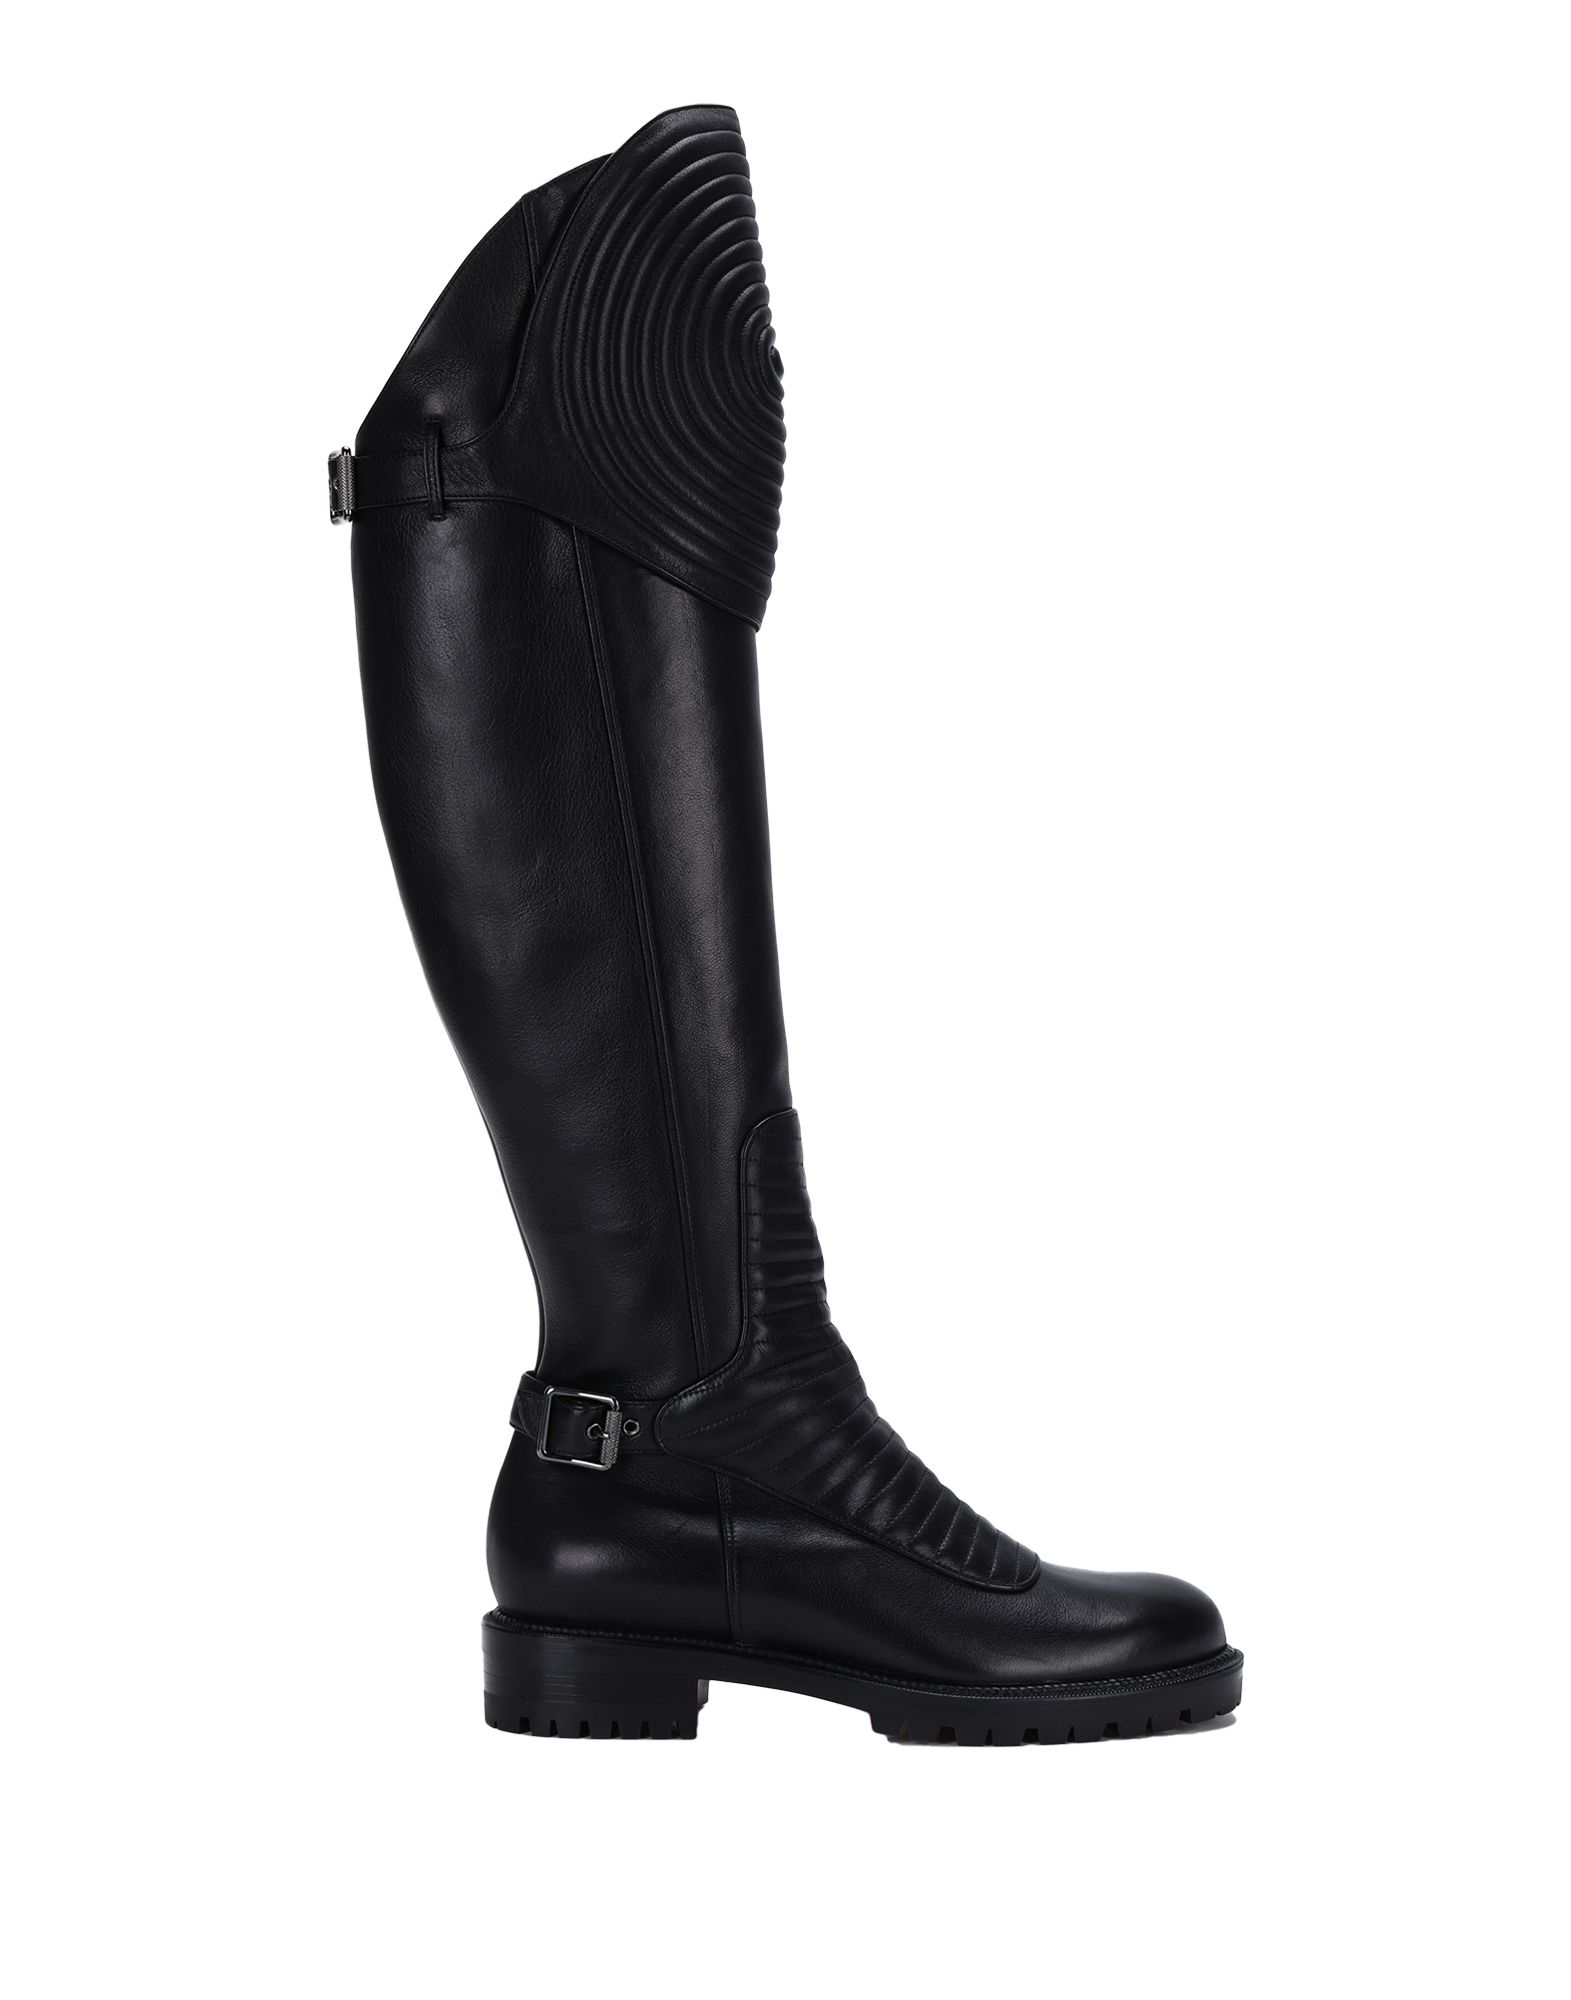 CHRISTIAN LOUBOUTIN Boots. solid color, round toeline, leather lining, lug sole, square heel, buckle, zipper closure, contains non-textile parts of animal origin, small sized. 100% Calfskin